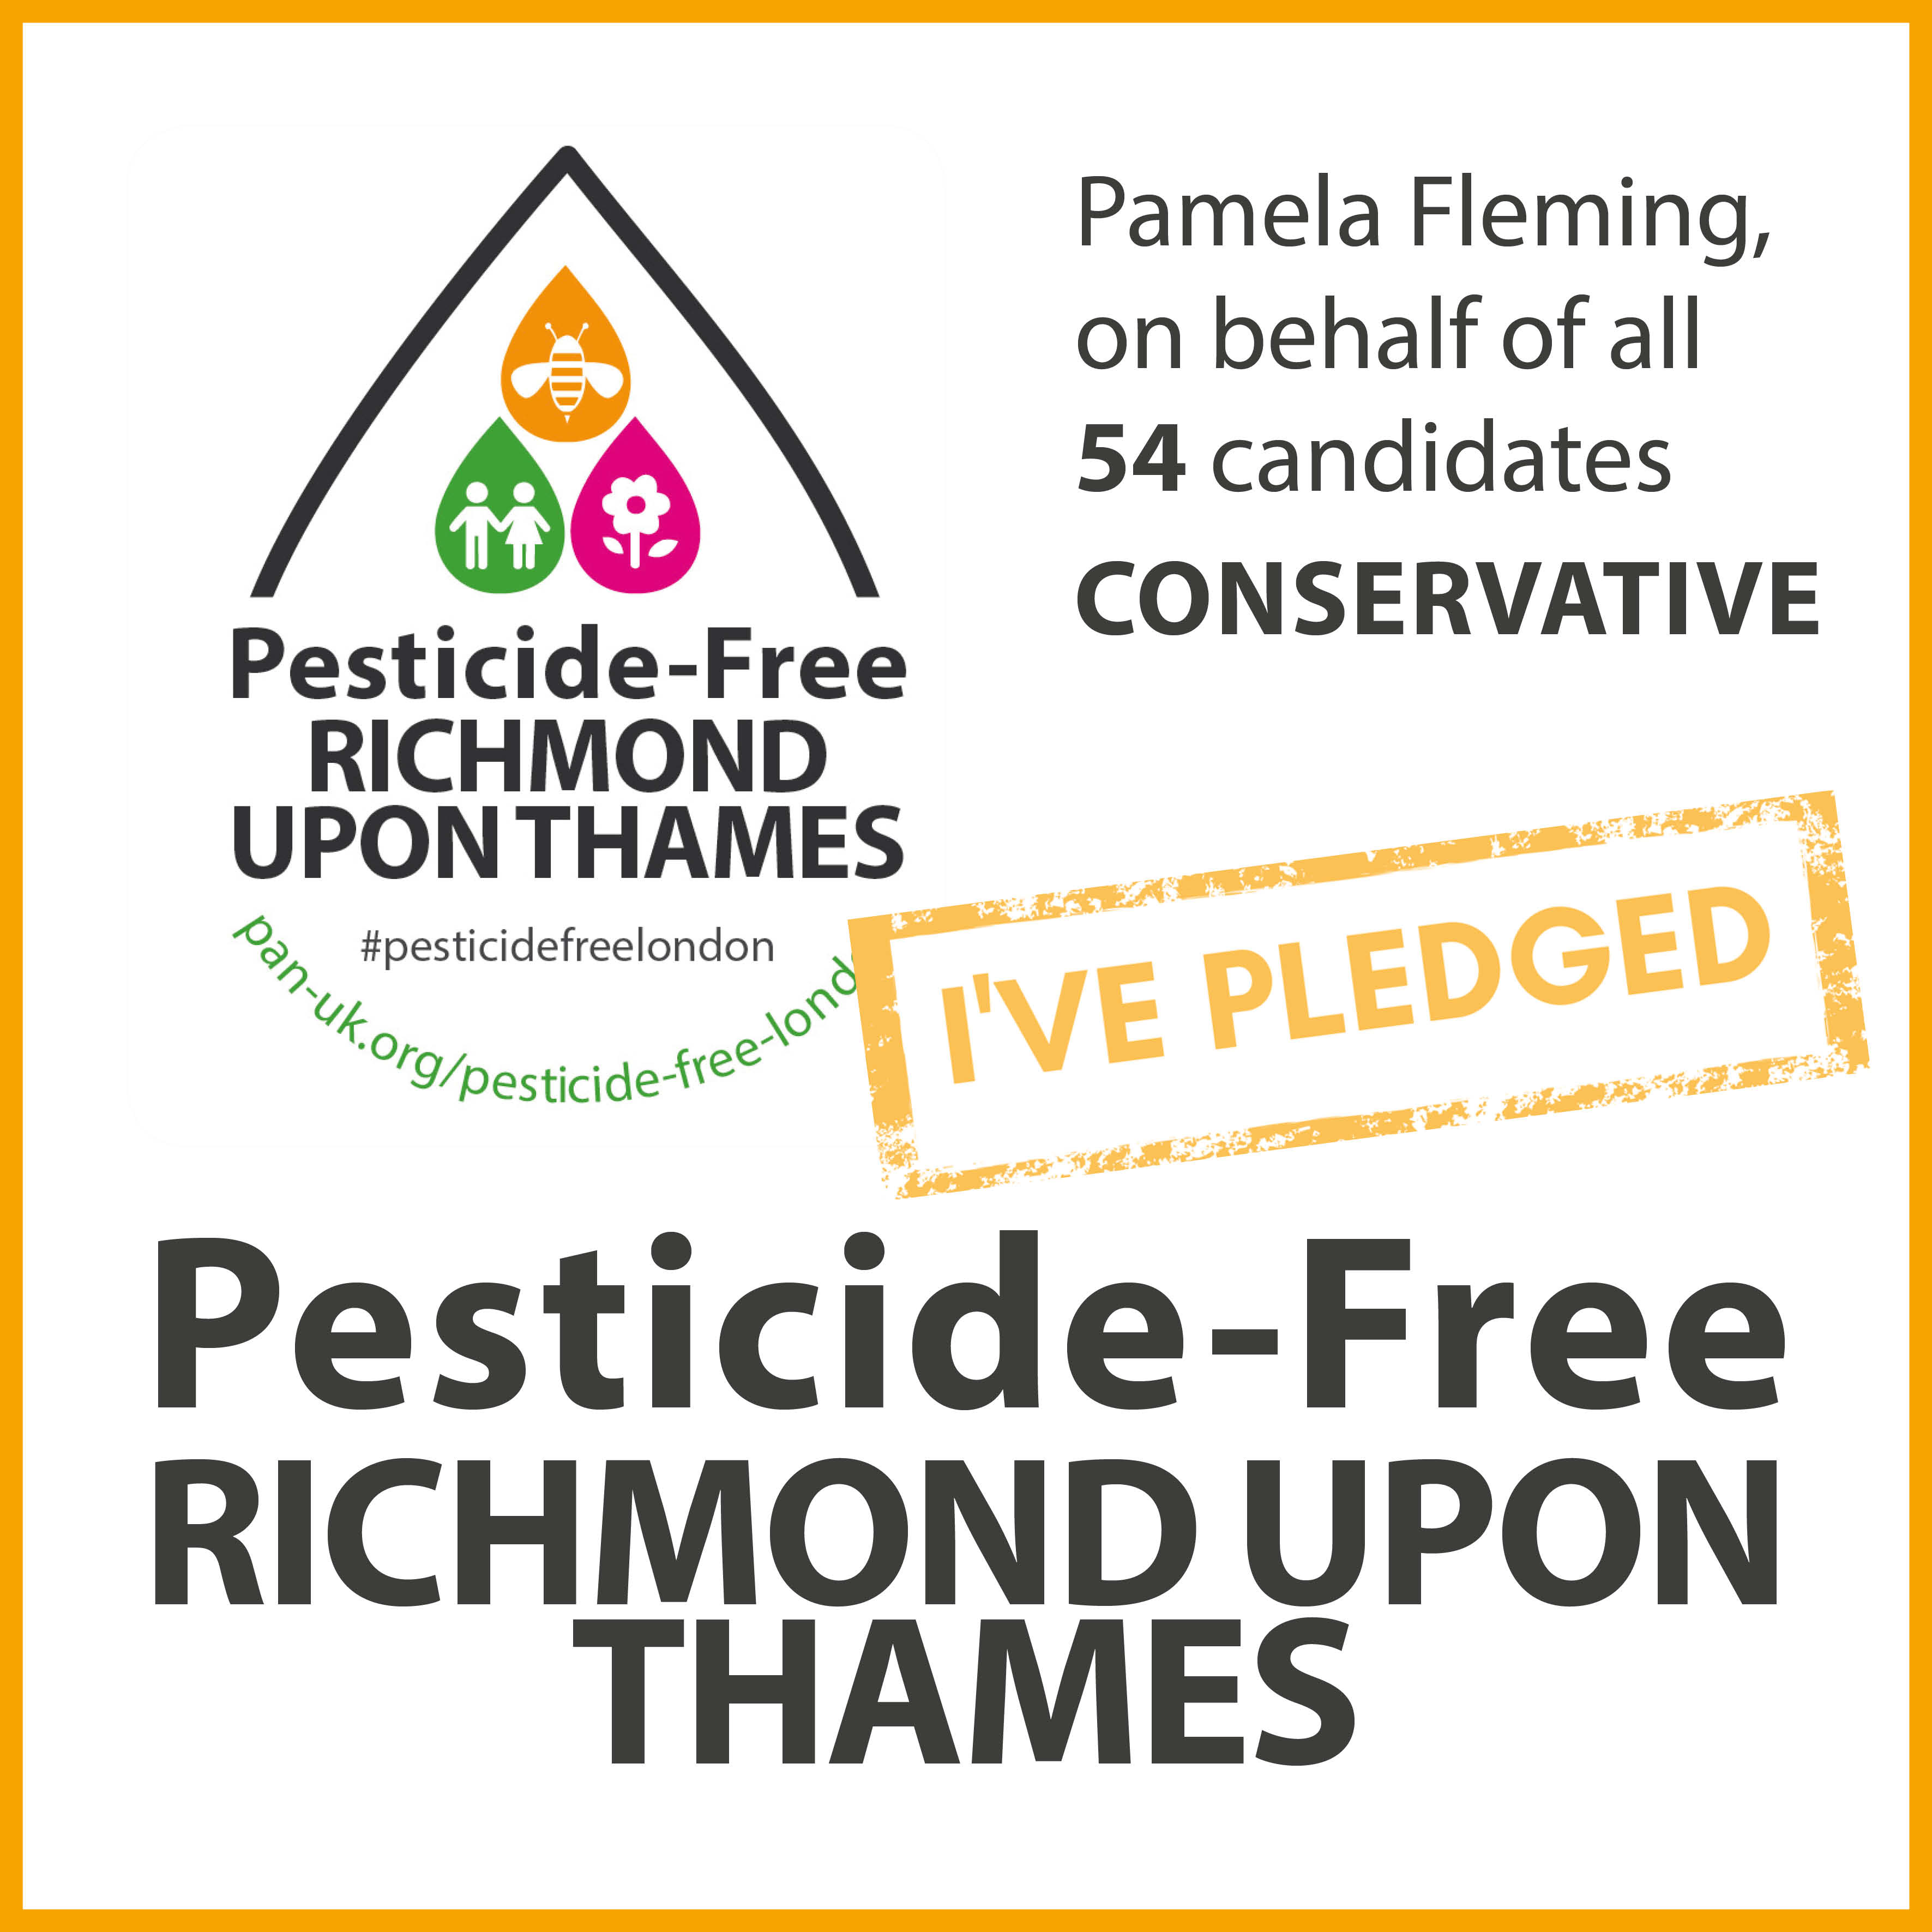 All 54 Conservative candidates have taken the pesticide-free pledge in Richmond